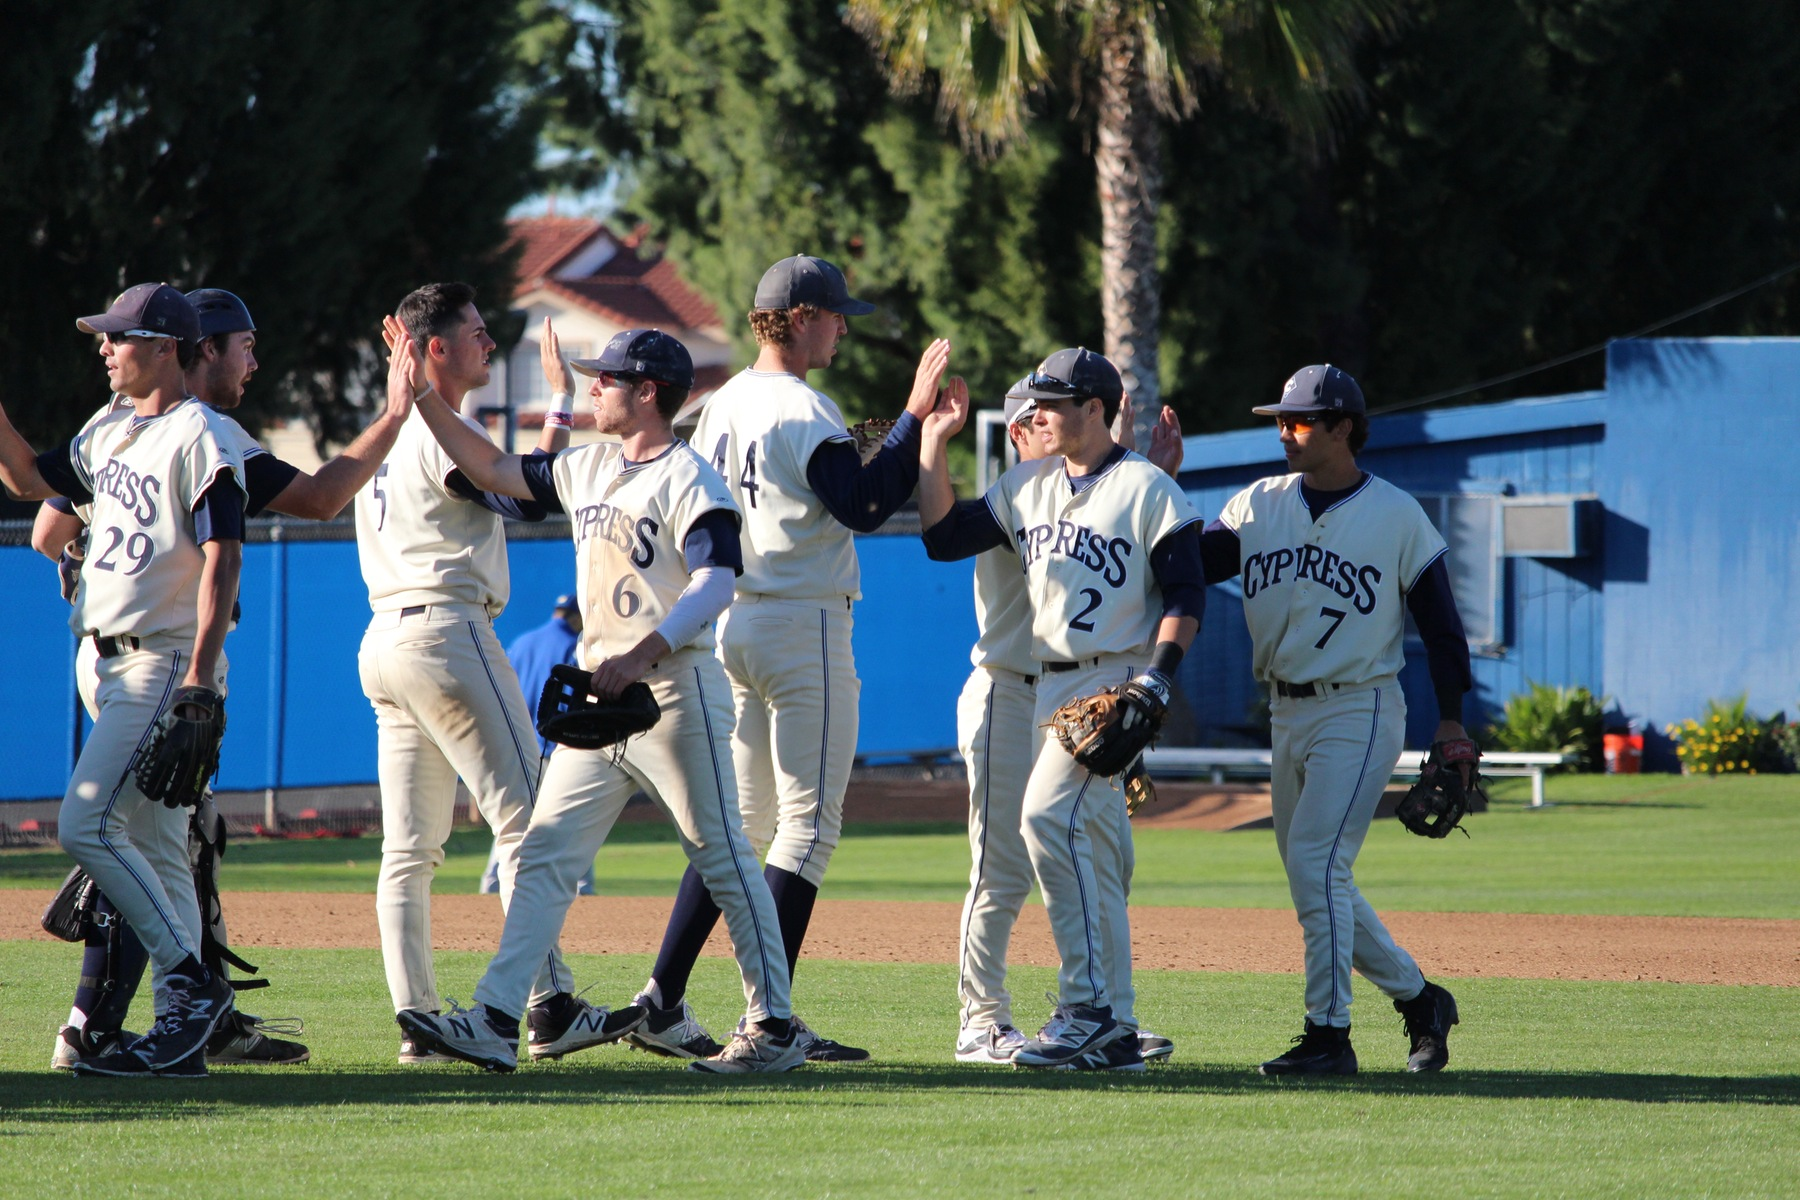 No. 4 Chargers Storm Back to Defeat No. 8 Tigers, 8-7